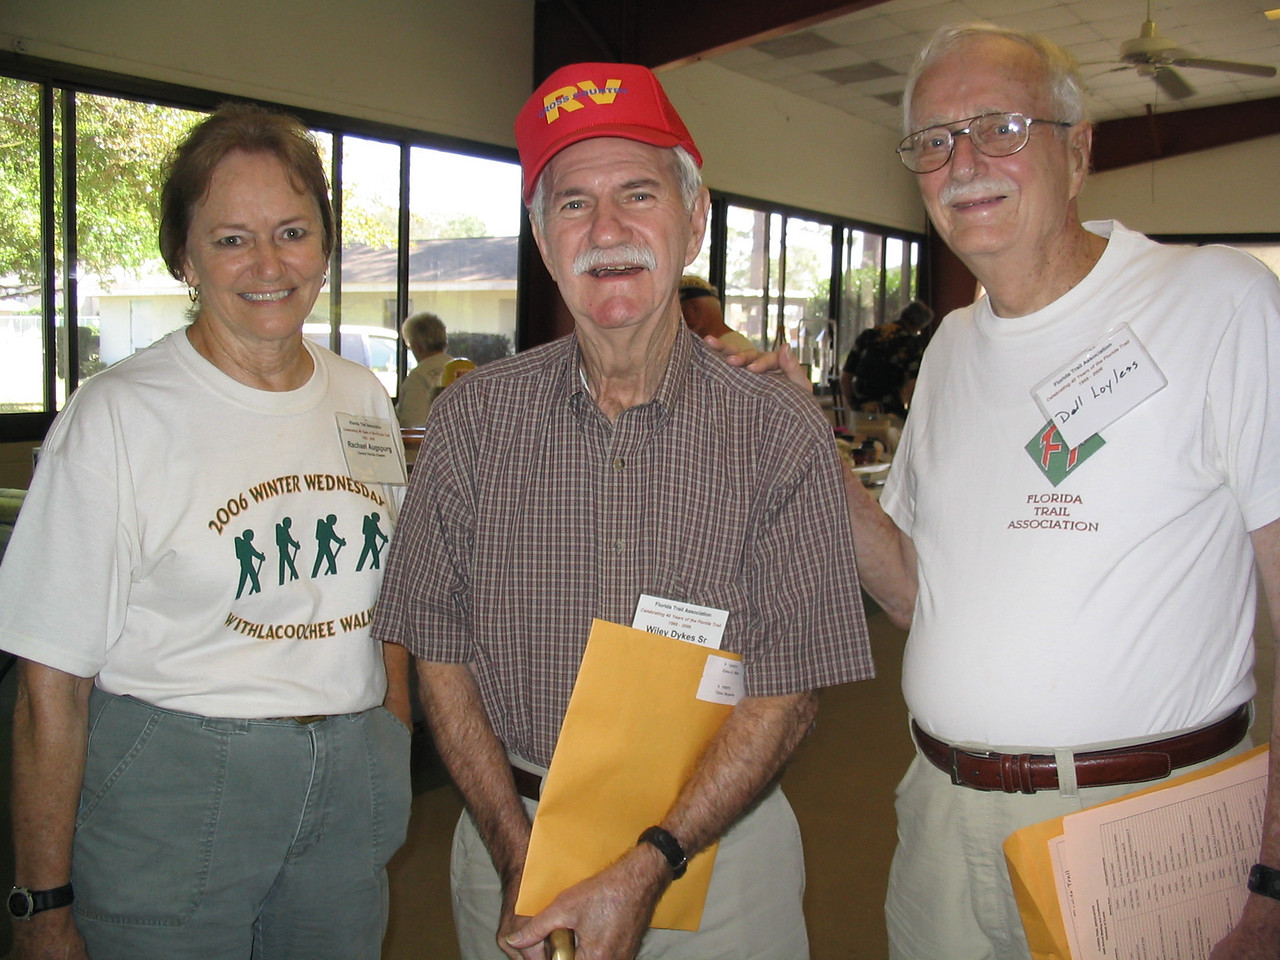 Rachael Augspurg and Del Loyless congratulate Wiley Dykes Sr., center, on his Presidential award<br /> PHOTO CREDIT: Diane Wilkins / Florida Trail Association